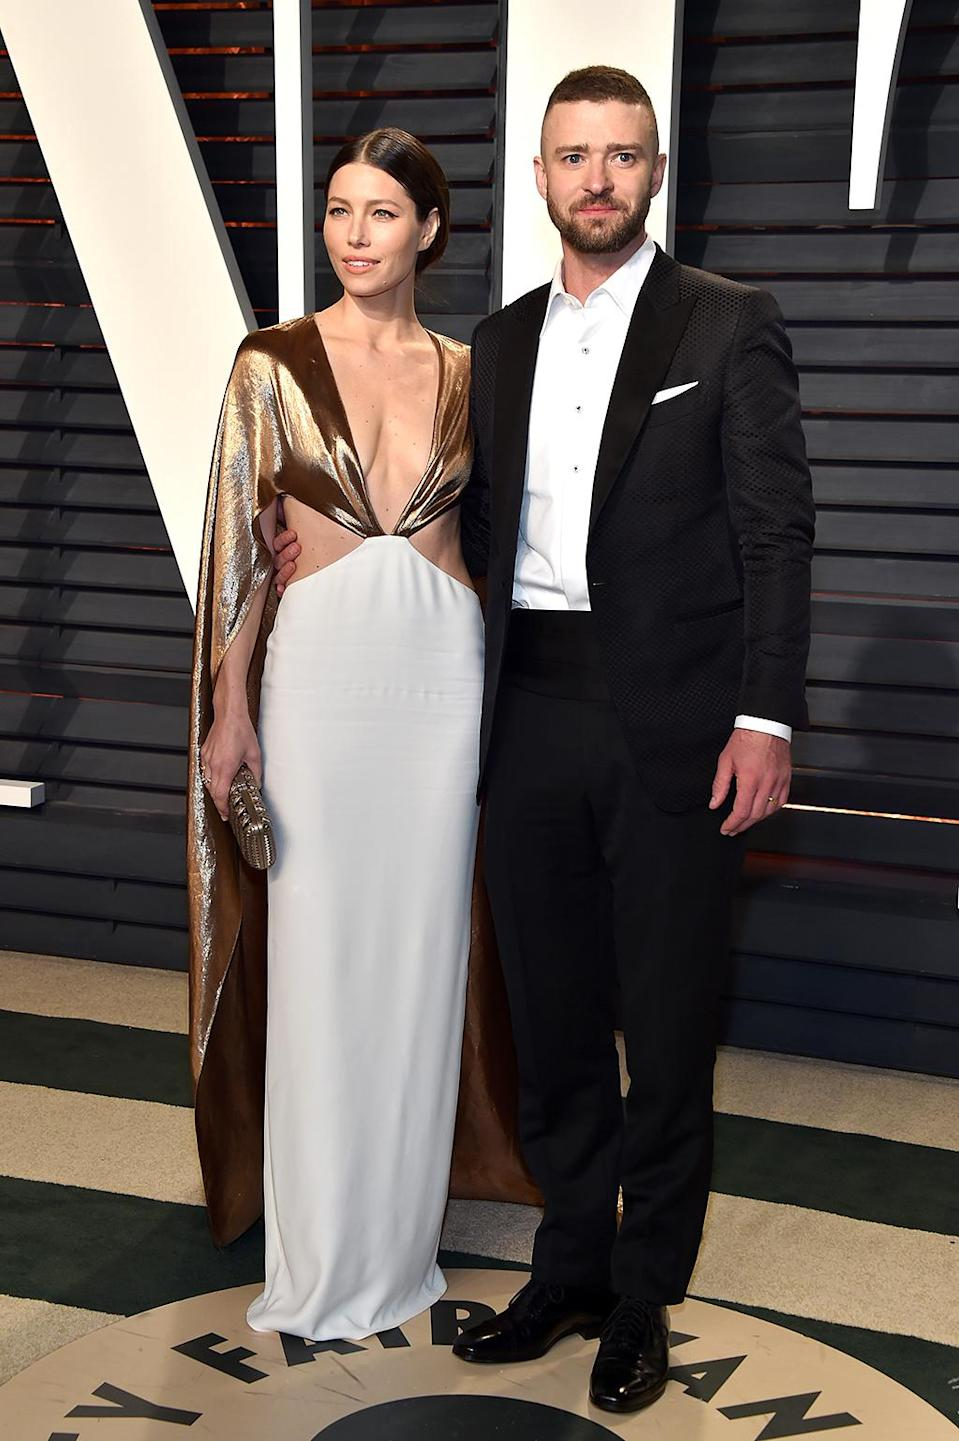 """<p>From the way Jessica Biel was dancing at the Oscars when hubby Justin Timberlake kicked off the show with a performance of """"Can't Stop the Feeling,"""" we're guessing she continued to bust a move at the afterparties. (Photo by Pascal Le Segretain/Getty Images) </p>"""